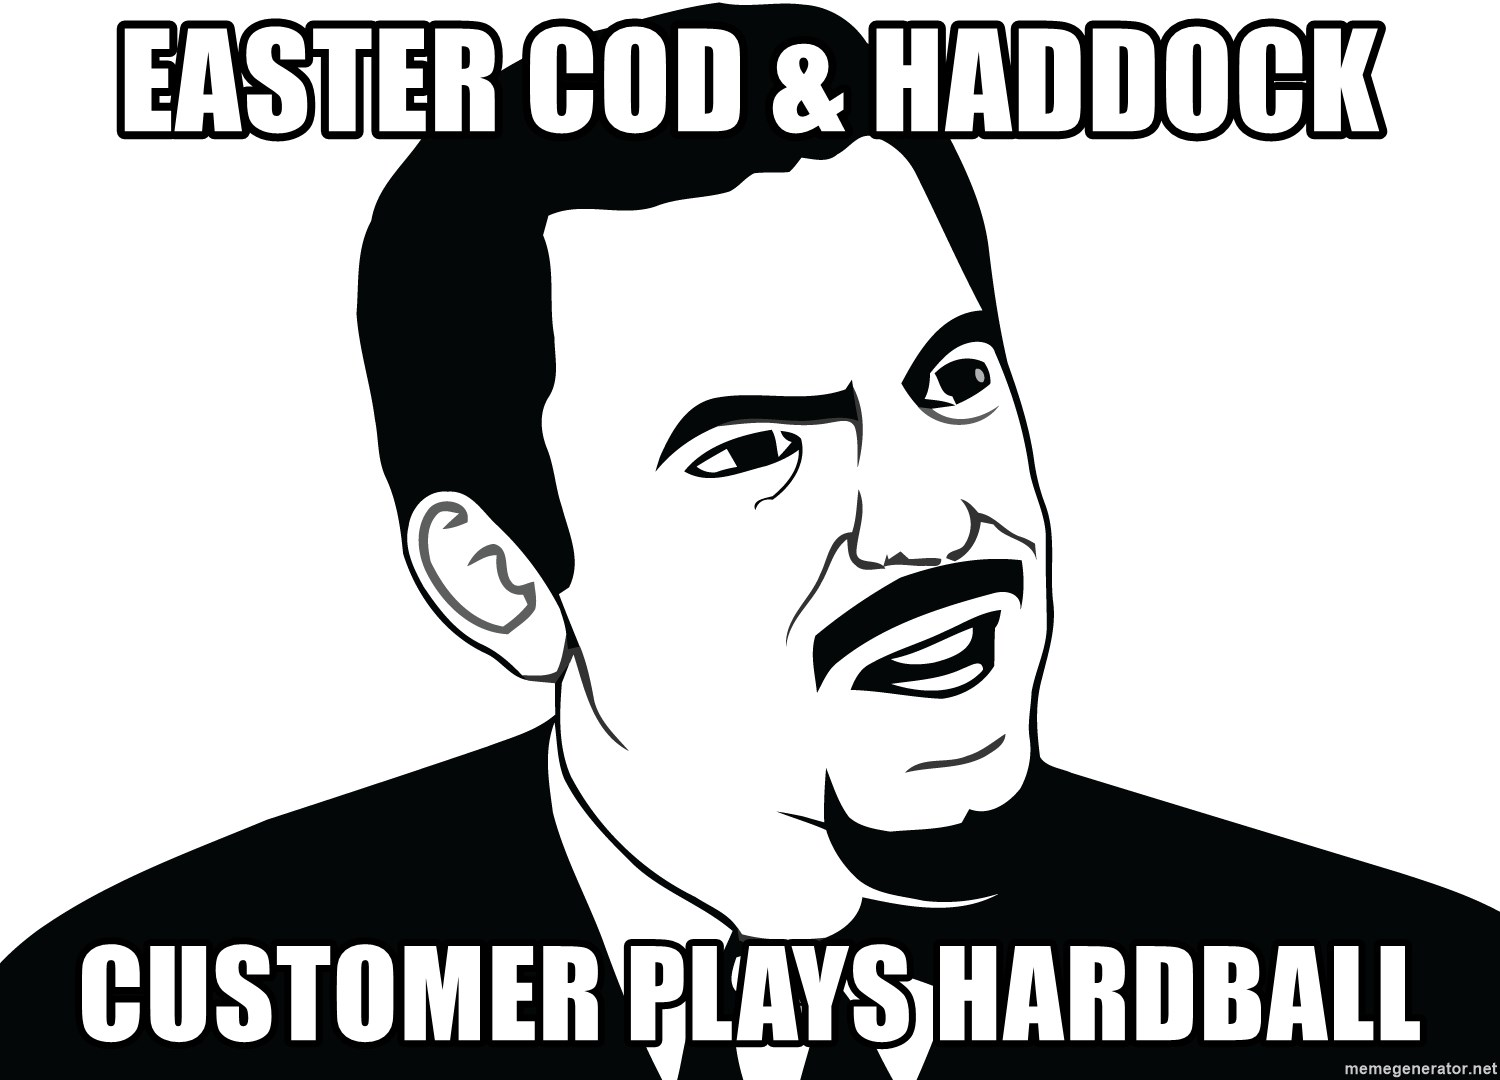 Are you serious face  - EASTER COD & HADDOCK CUSTOMER PLAYS HARDBALL